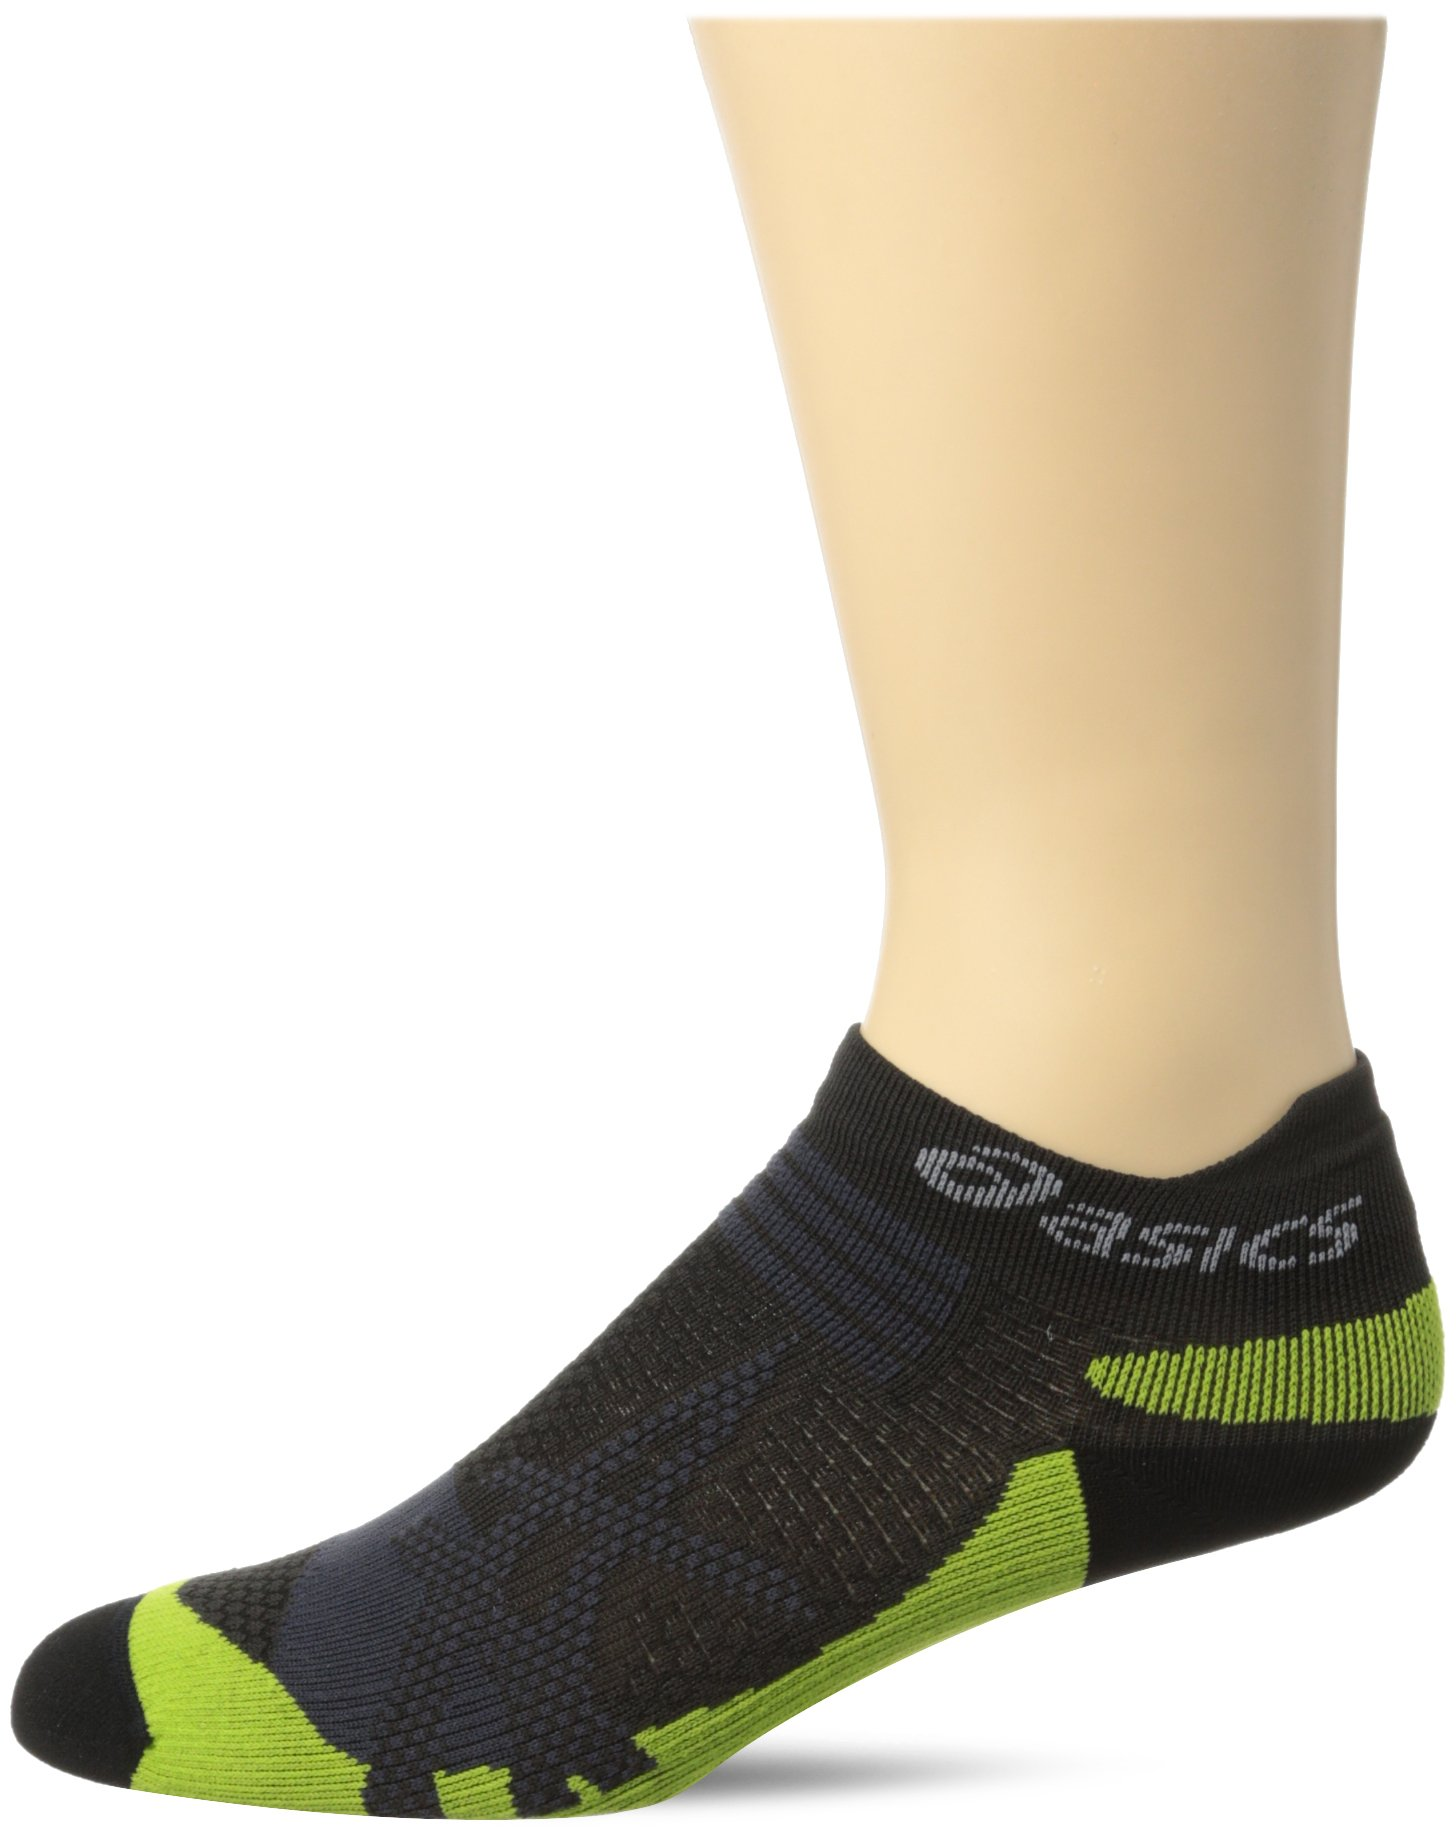 ASICS Kayano Single Tab Sock, Black, Small by ASICS